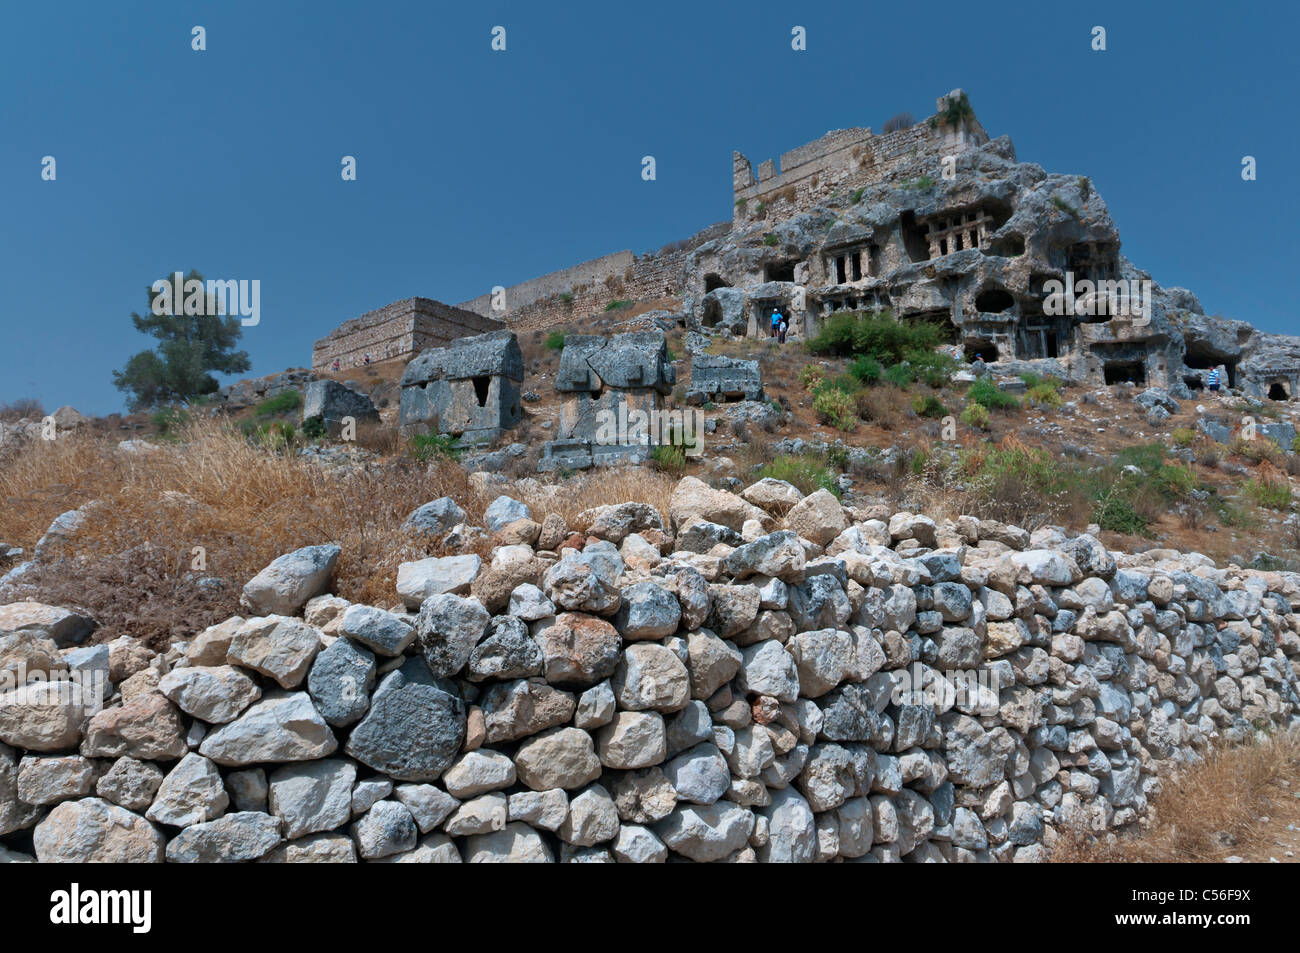 Tlos is known to have been one of the most important religious centers of the Lycian region in Antalya province - Stock Image